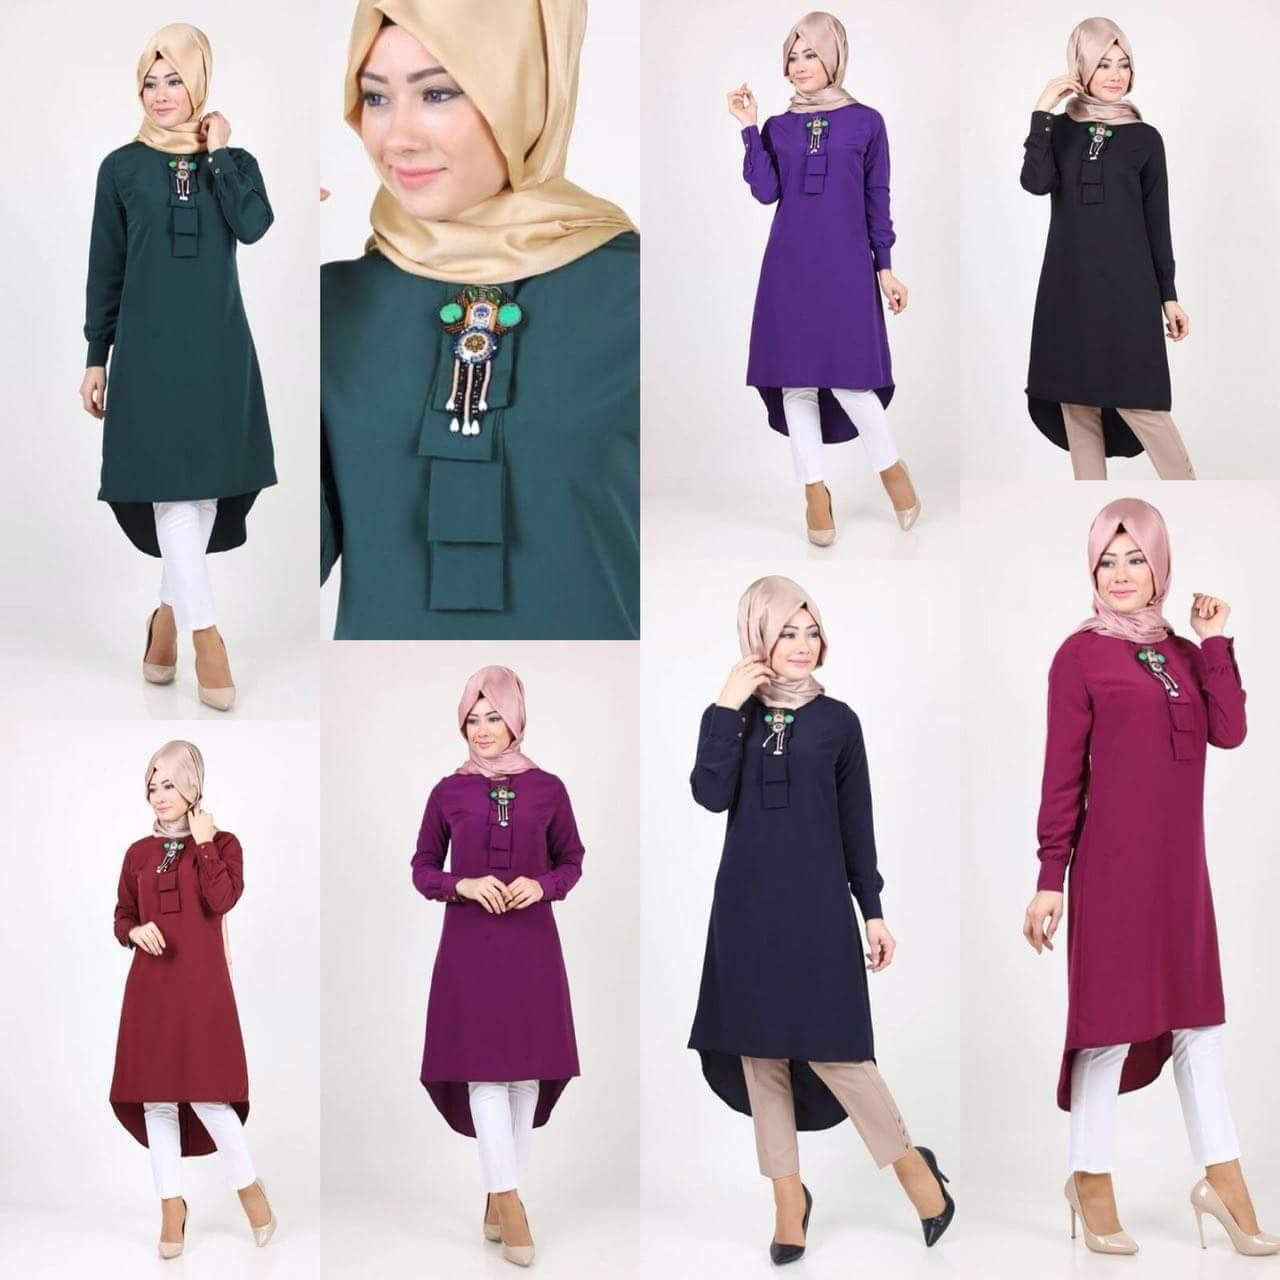 4c861aa05581b Good Quality Tunic Jubah Plus Size Malaysia Casual Tops Fashion Muslim  Clothing Long Sleeve Swallow-tailed Loose Women Blouse 50  Loose Women  Blouse Good ...